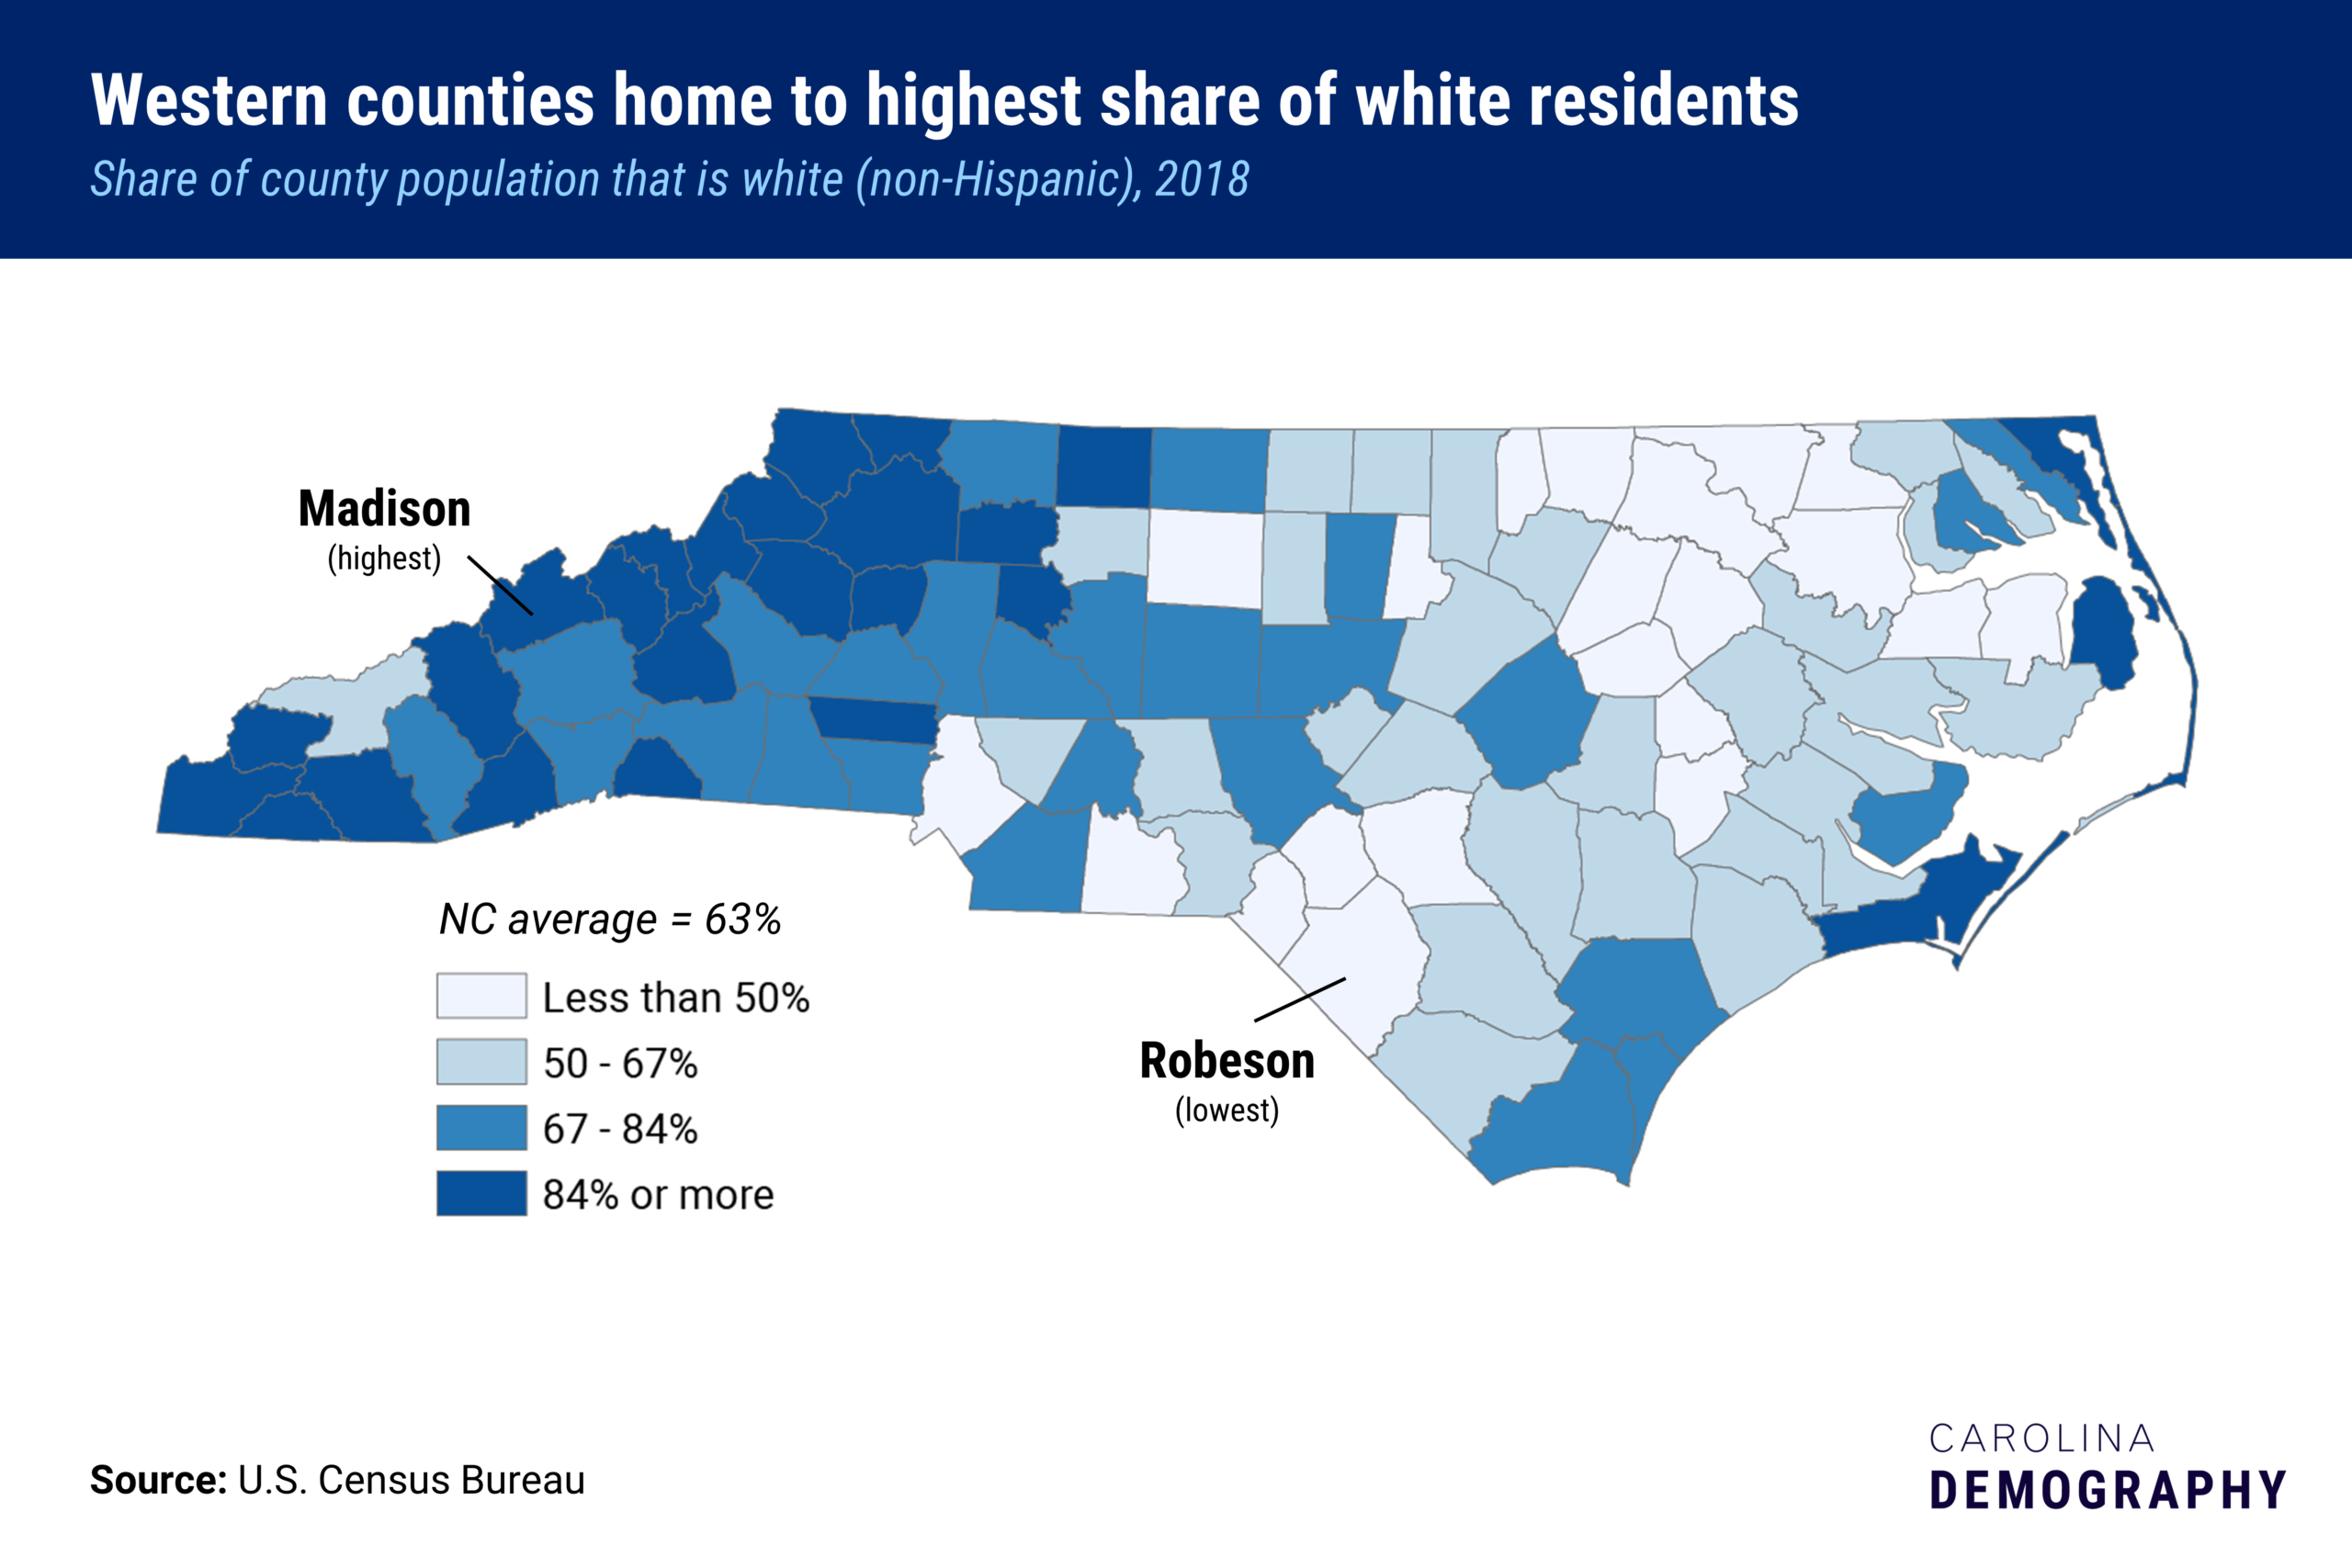 A county map of North Carolina showing the share of county population that is White. Madison county has the highest share, where Robeson county has the lowest. The state average is 63 percent.